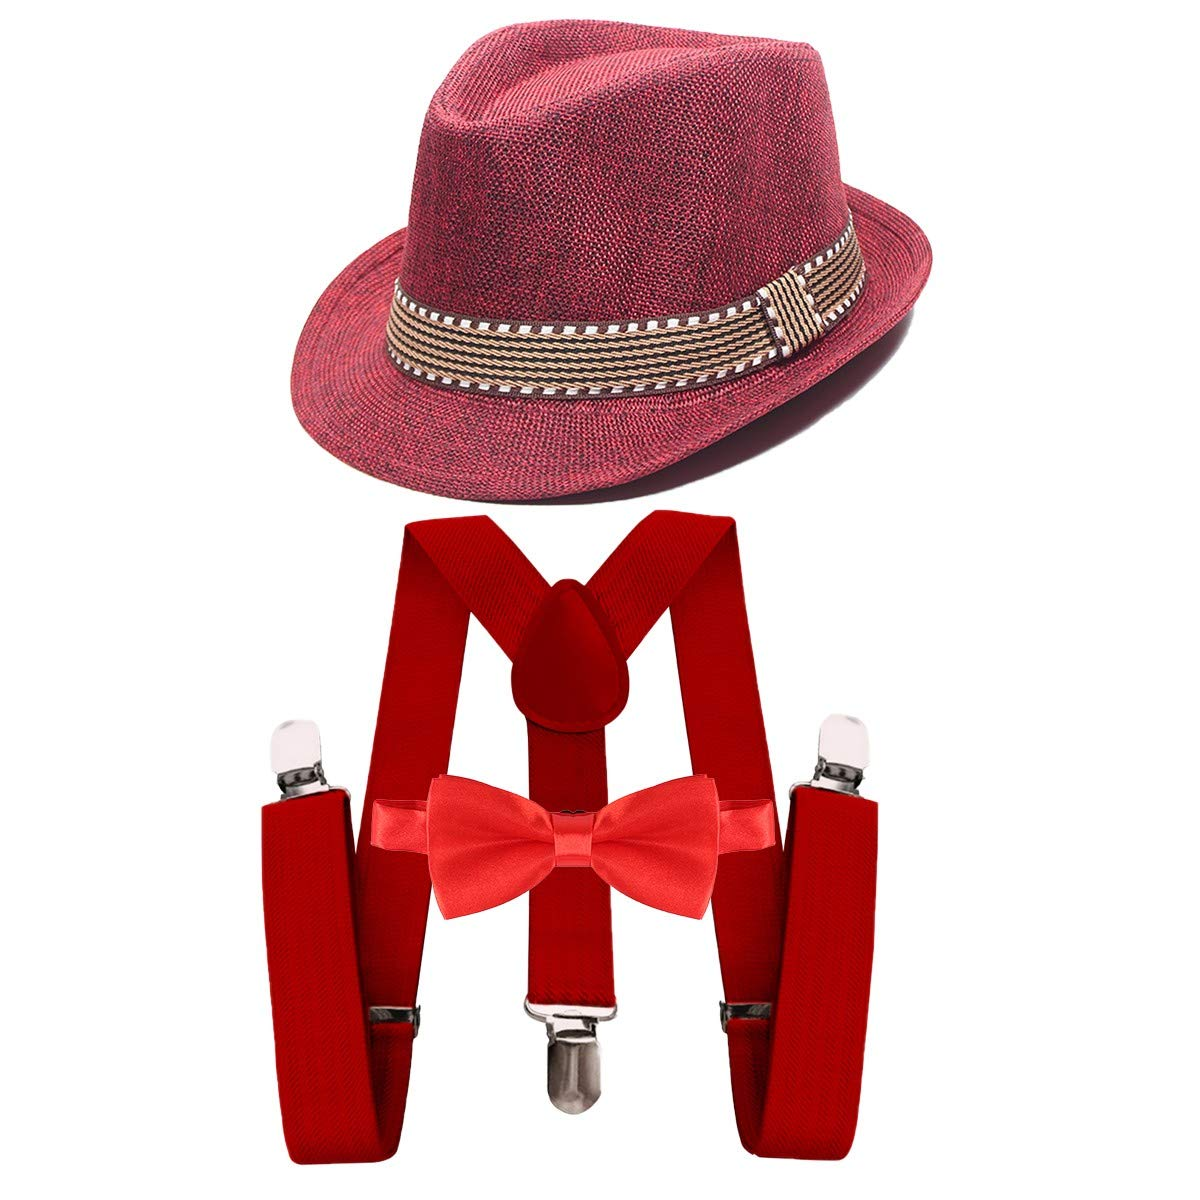 MYRISAM Kids 1920s Themed Party Costume Accessories Set Fedora Gangster Hat Adjustable Suspenders Bow Tie 3pcs Outfit 2-15T